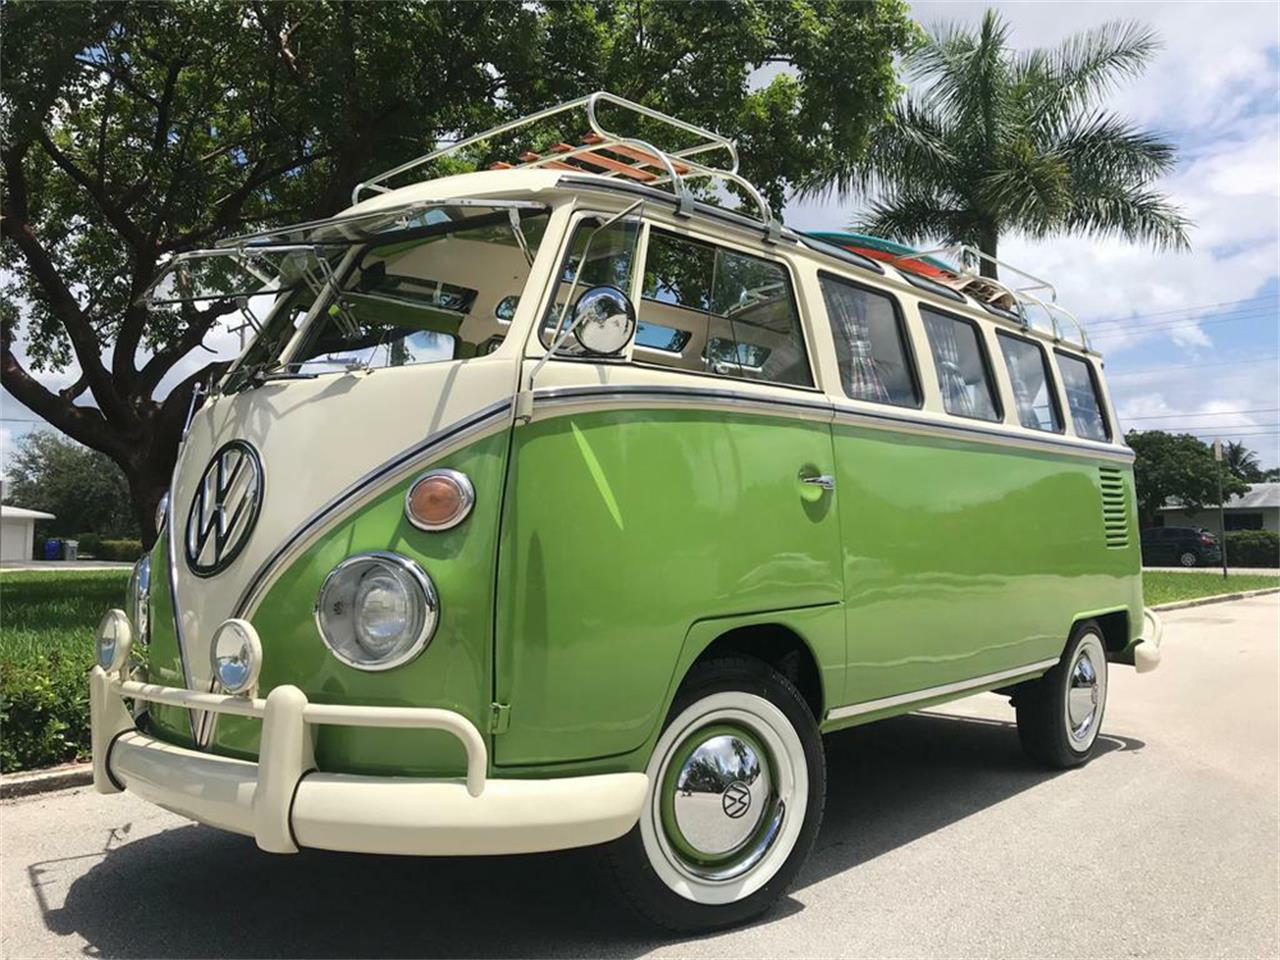 1973 Volkswagen Automobile (CC-1259193) for sale in Las Vegas, Nevada